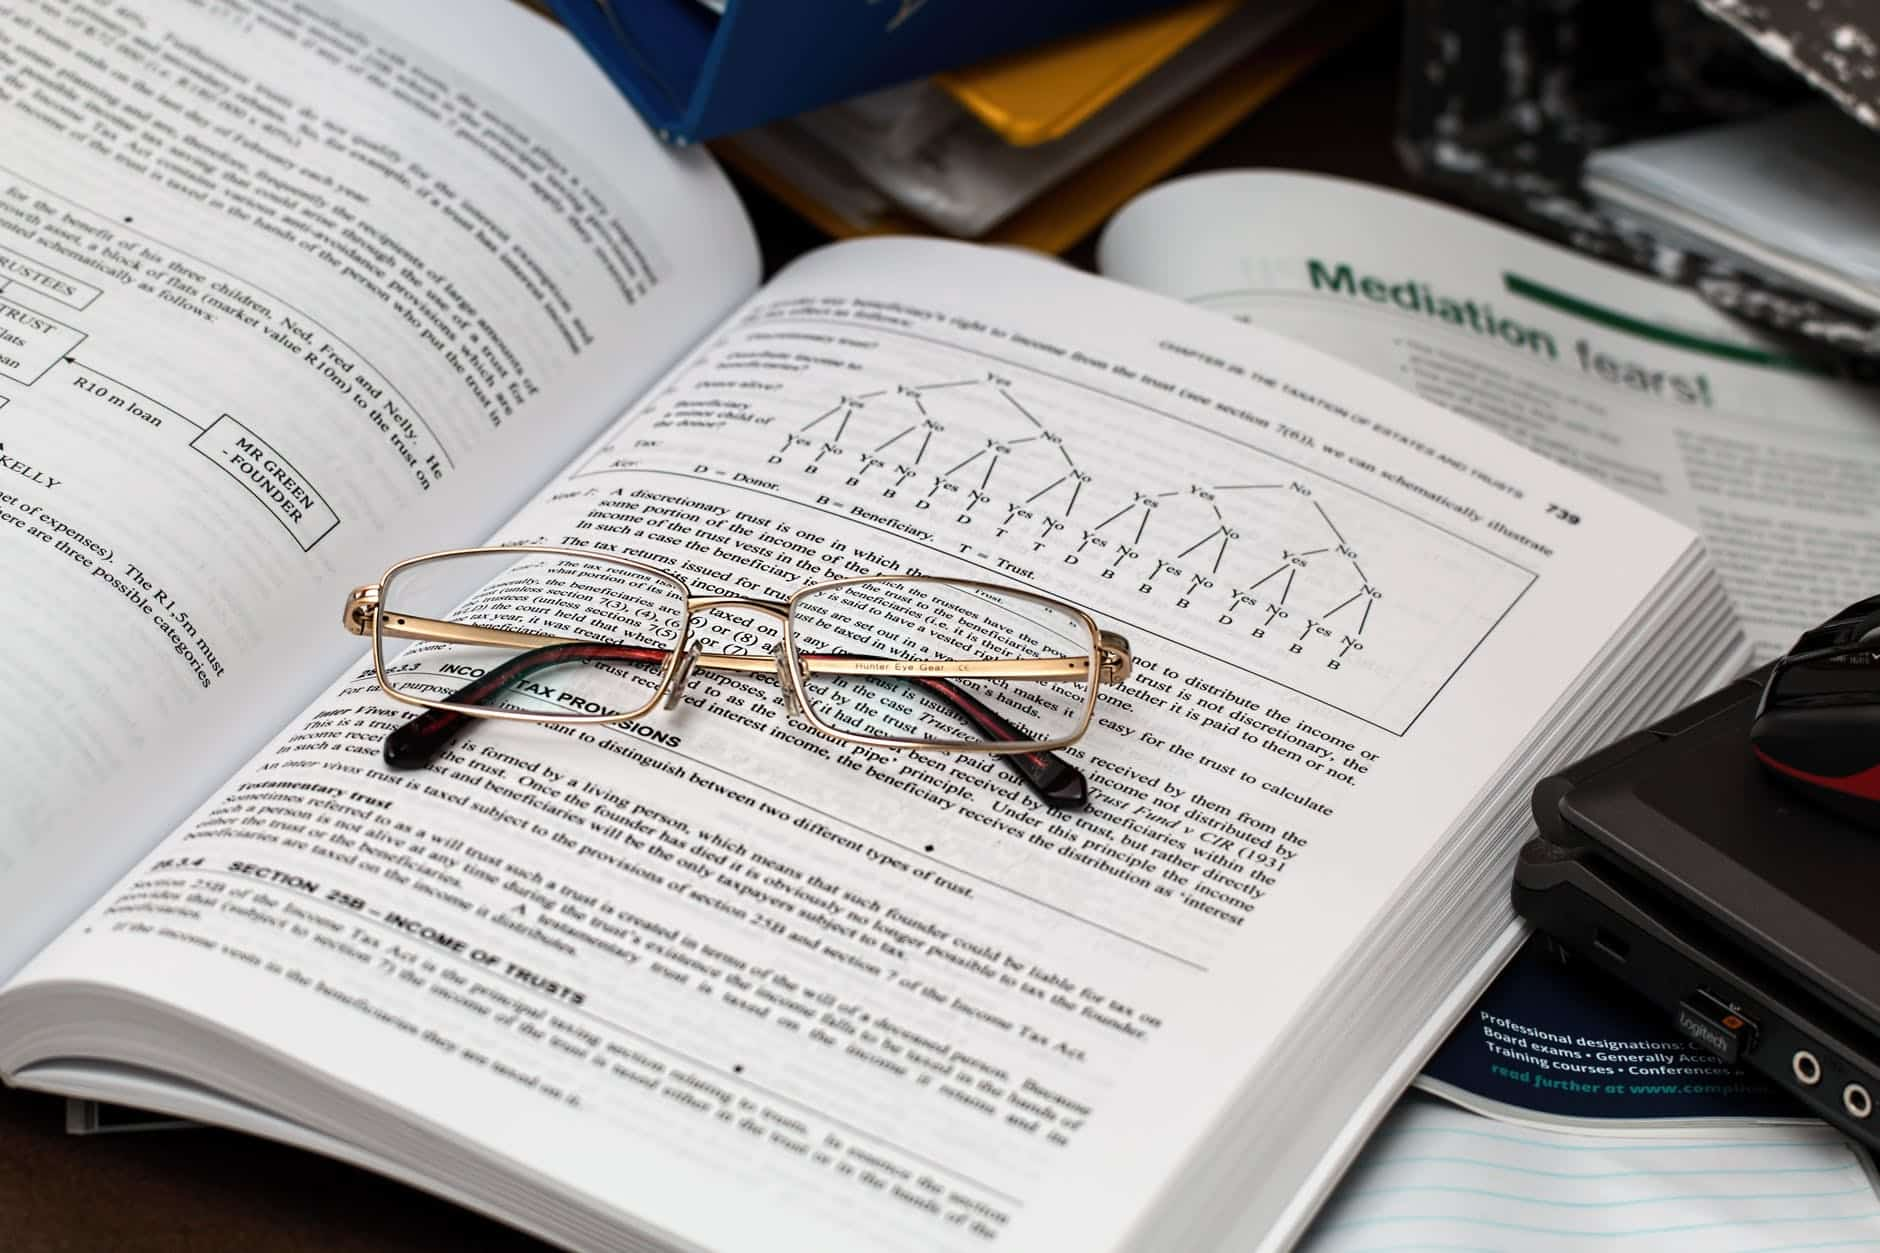 Eyeglasses on open book, best real analysis books